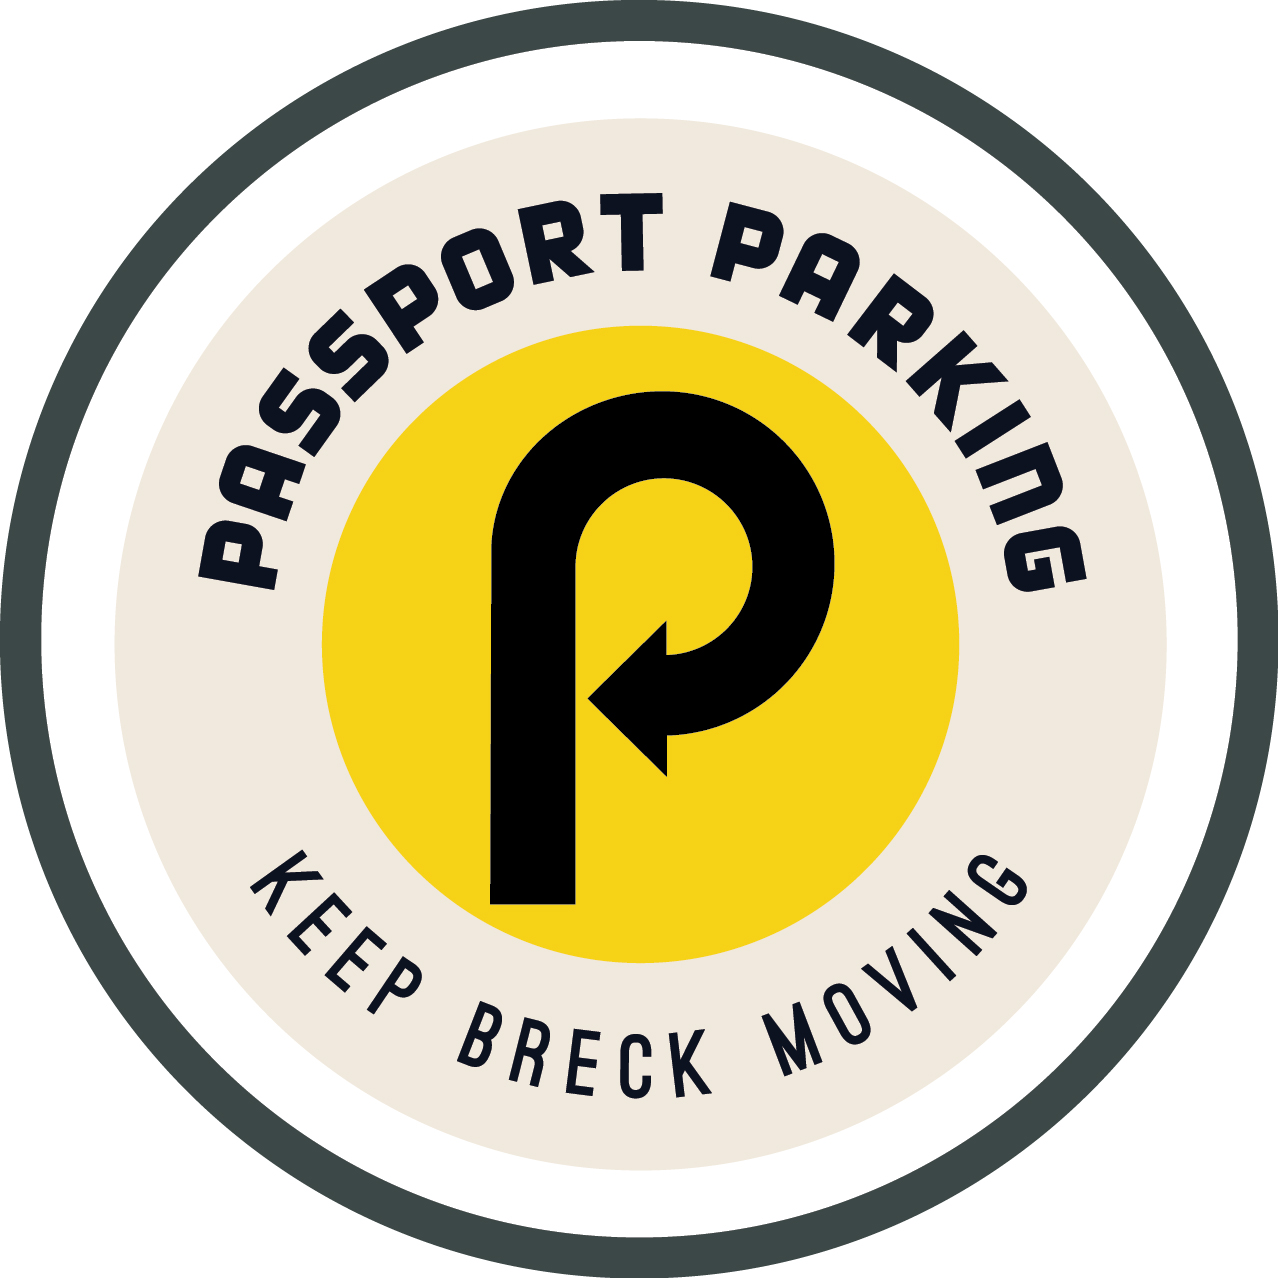 Passport Parking Keep Breck Moving logo